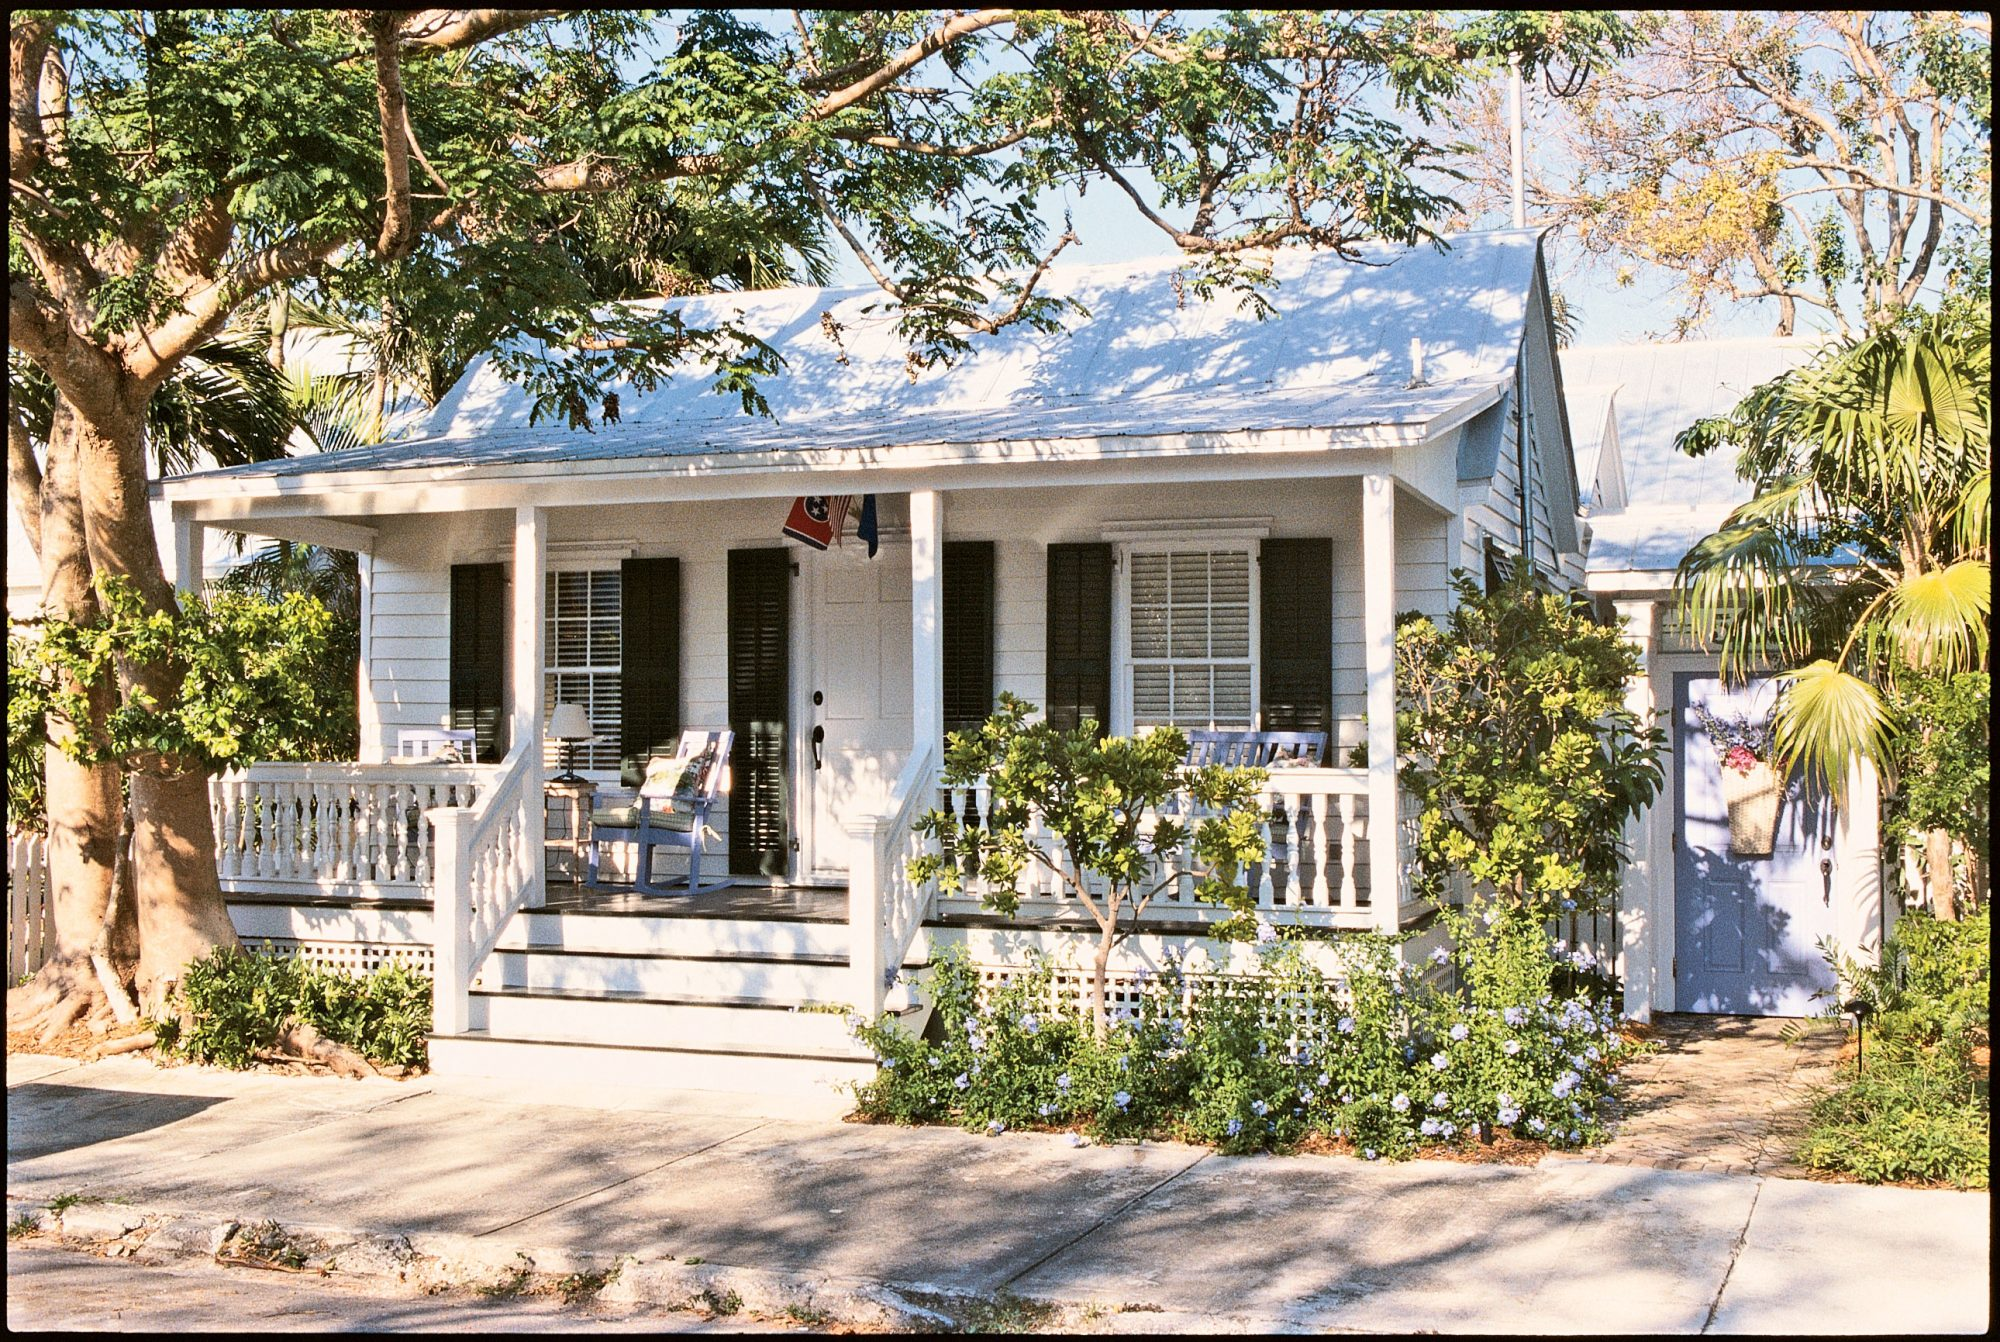 Candice and Marty Carr's clapboard getaway cottage in Key West was built at the end of the 19th century. A 1980s addition gave it the sawtooth roofline, with parallel gables that create a zigzag appearance. On the inside, it's clear that laid-back is the attitude of choice in this home.